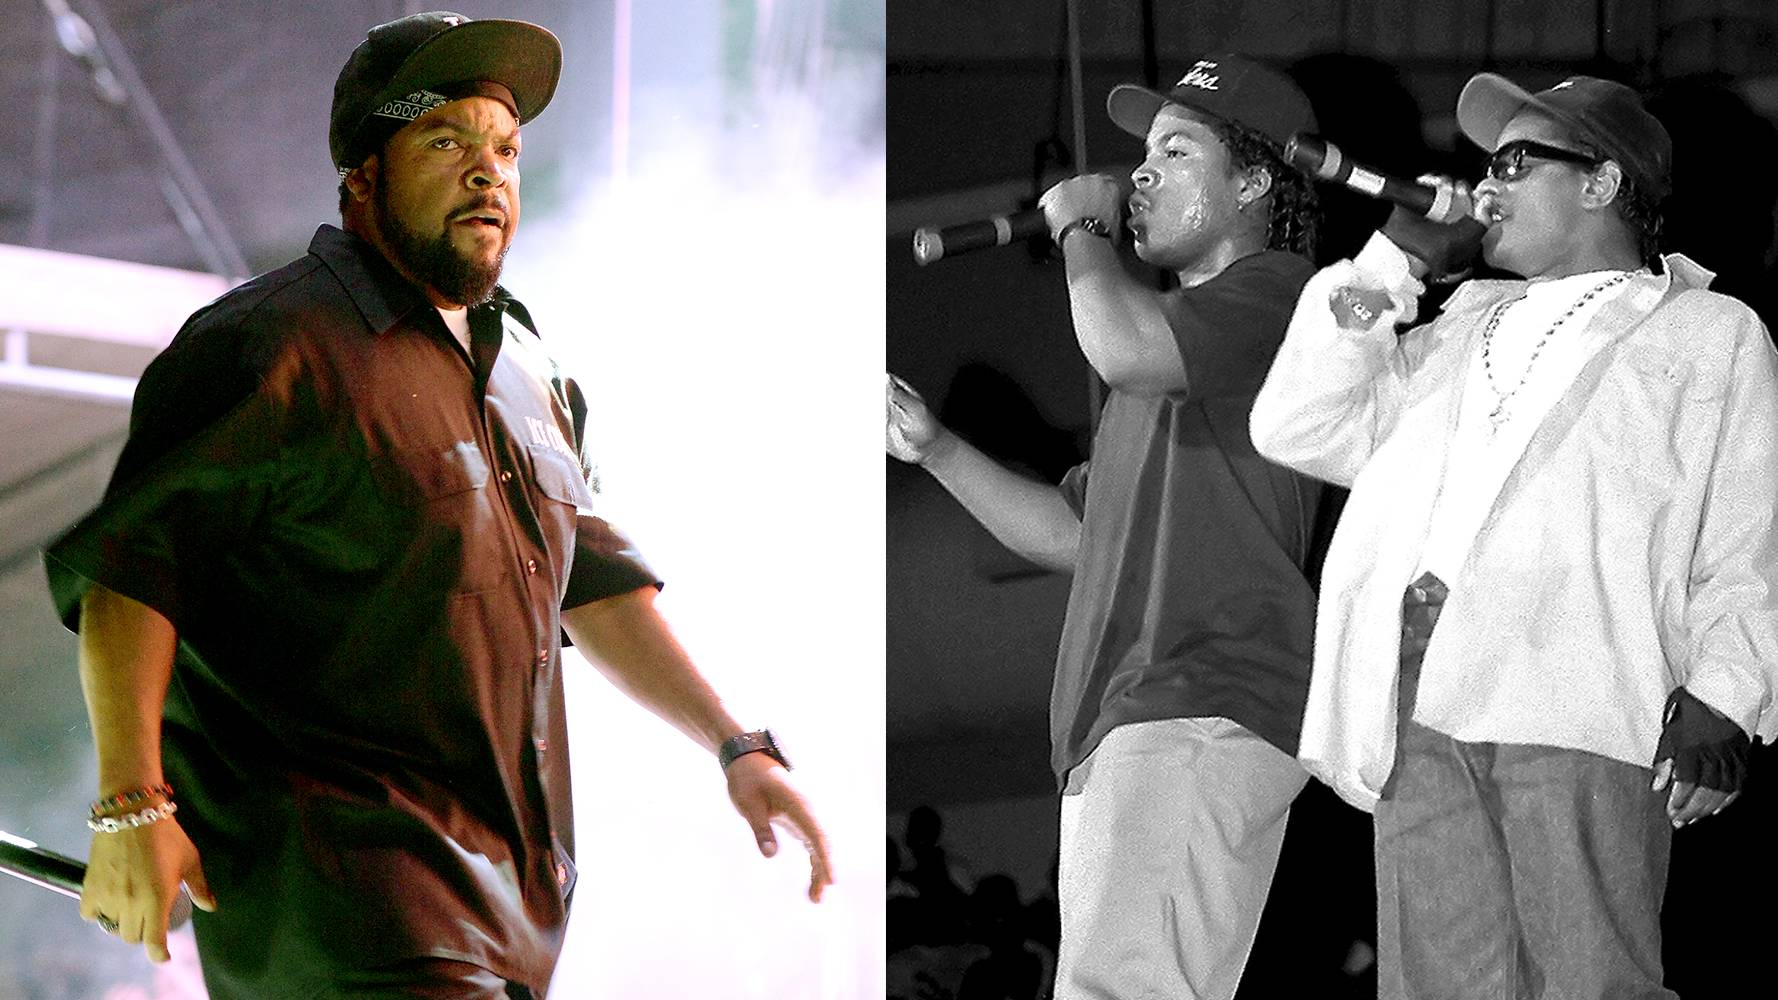 Ice Cube | NWA  - Compton hip hop groupNWAmade waves around the country with their debut release of Straight Outta Compton. Ice Cube split from the group in 1989 and continued making a name for himself beyond the mic by getting into some serious acting roles as well as landing huge endorsements. (Photos from Left: Jason Merritt/Getty Images, Raymond Boyd/Michael Ochs Archives/Getty Images)